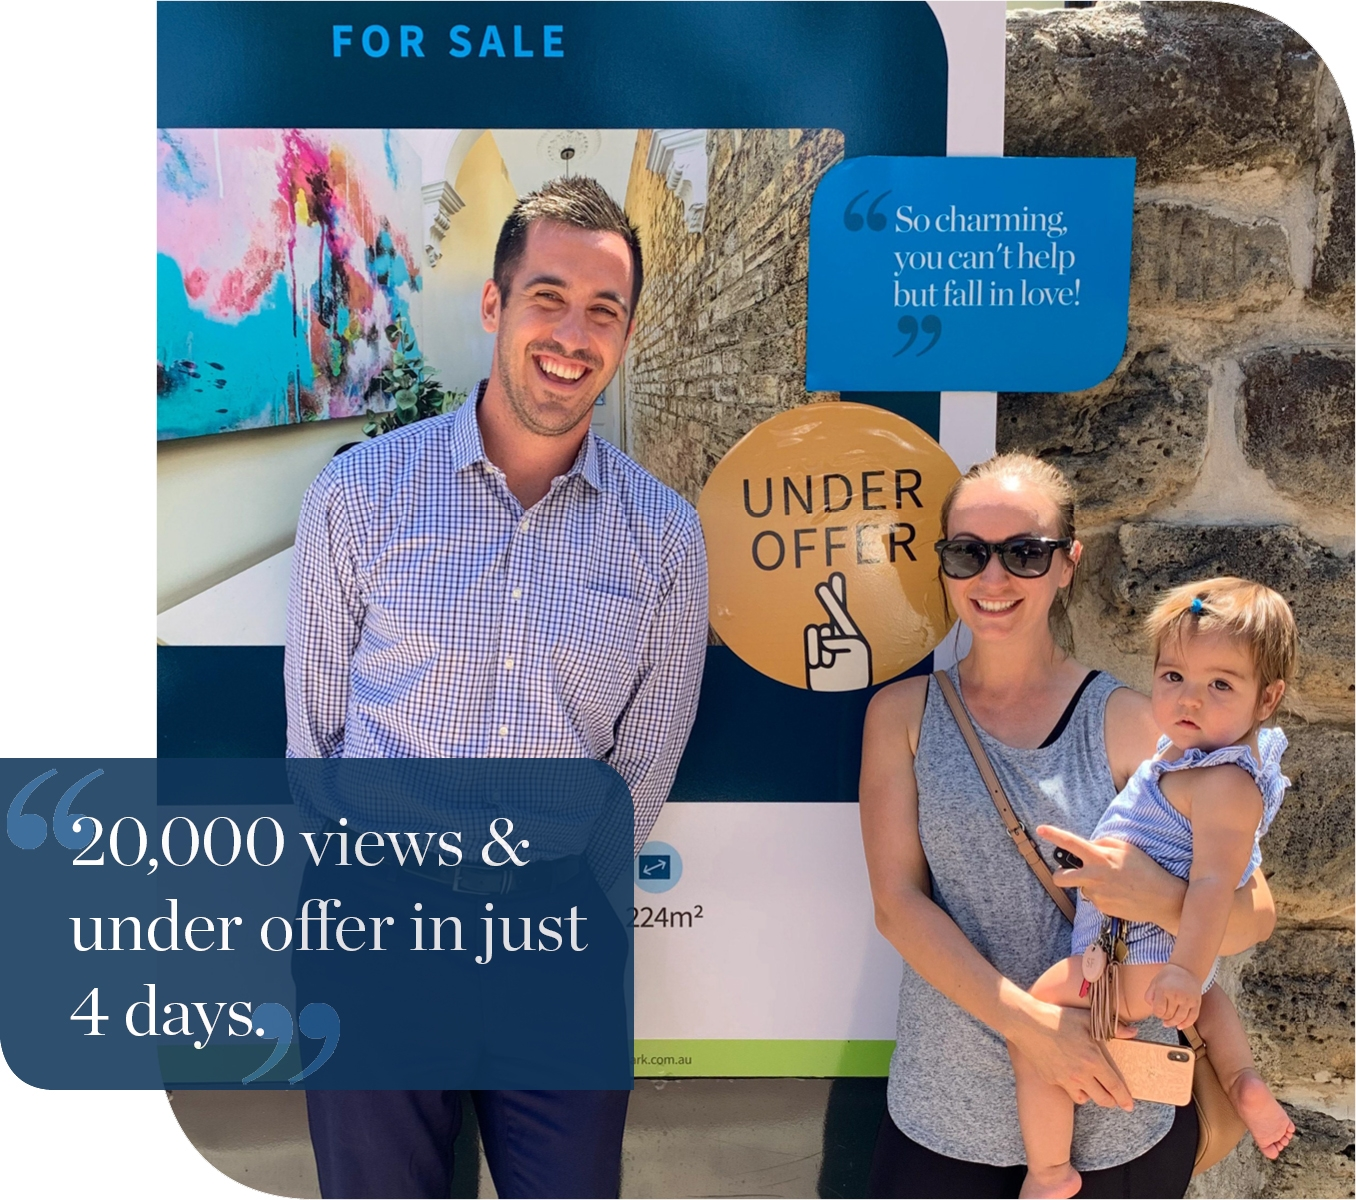 How does property marketing work? | Leederville.